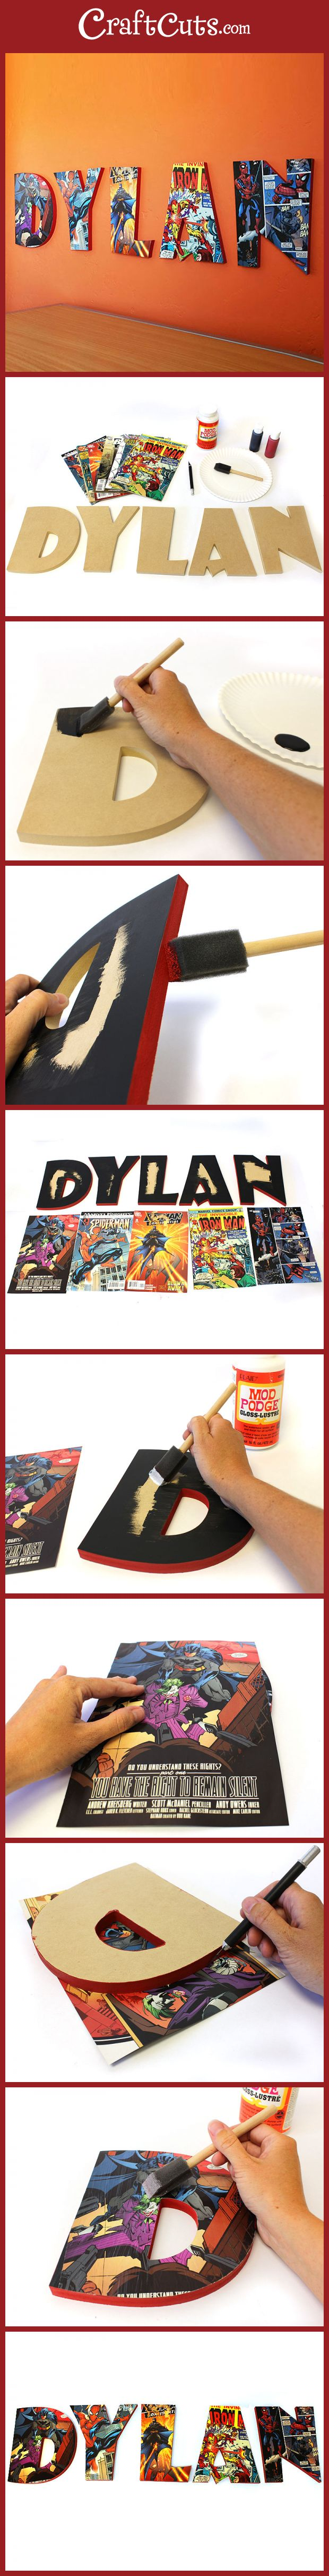 How to Make Comic Book Letters | Wood Comic Book Letters | CraftCuts.com …